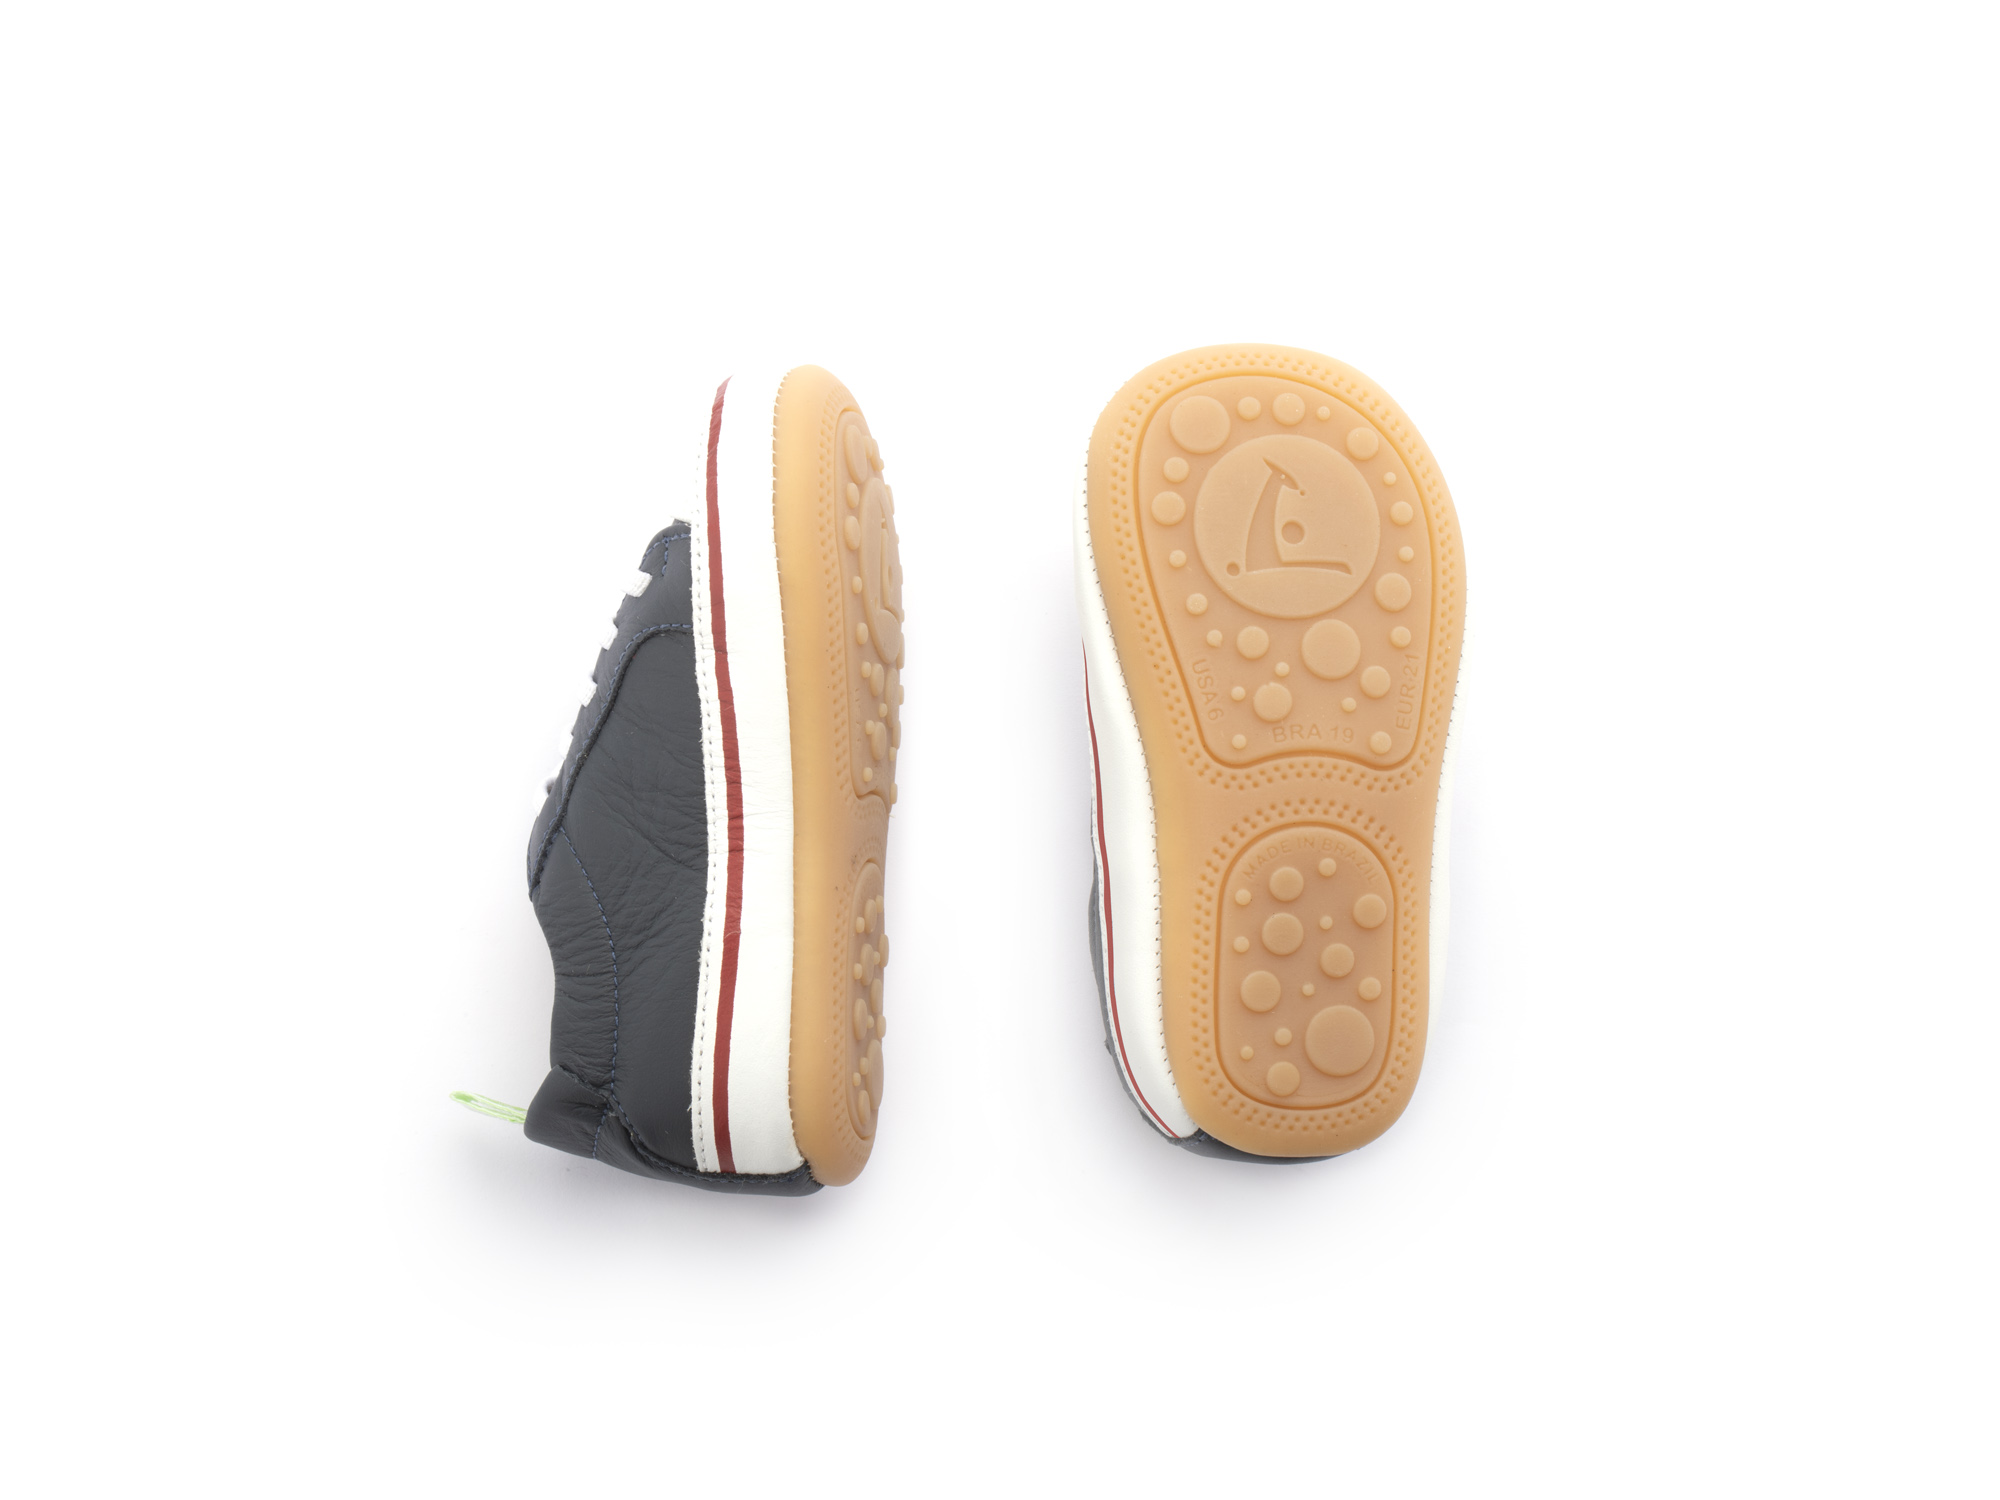 Sneaker Casual Funky Navy/ White Baby 0 à 2 anos - 1